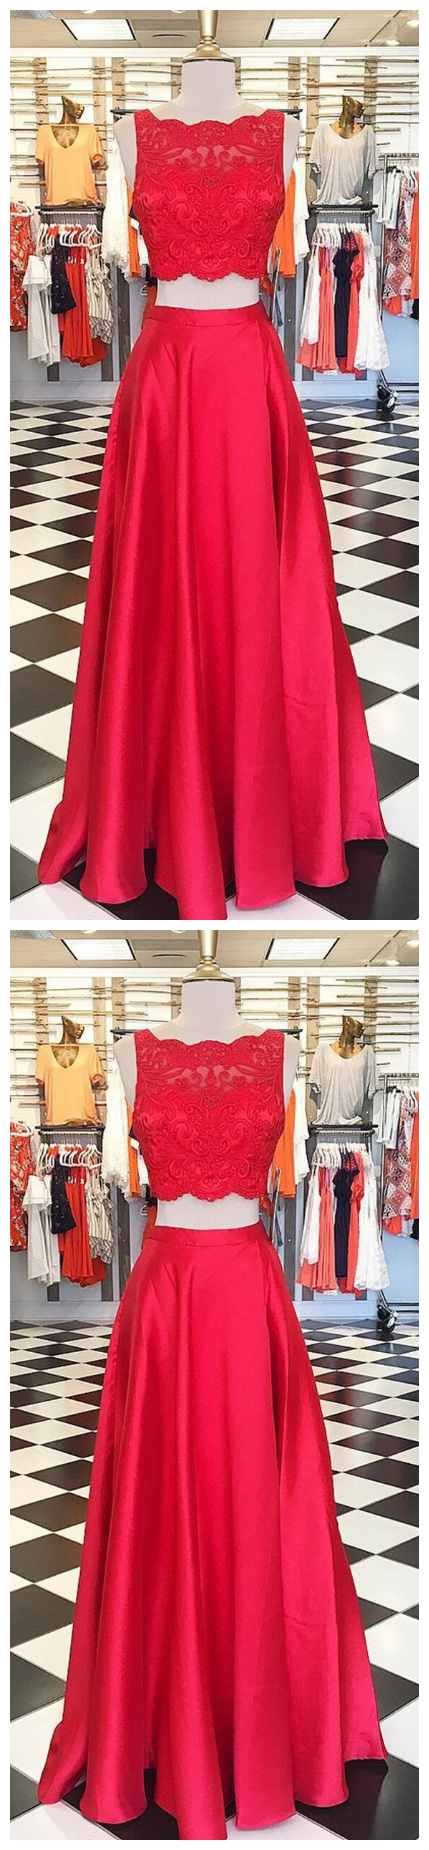 Red Two Piece Prom Dresses,Satin Evening Dress,Modest Prom Dress #modestprom